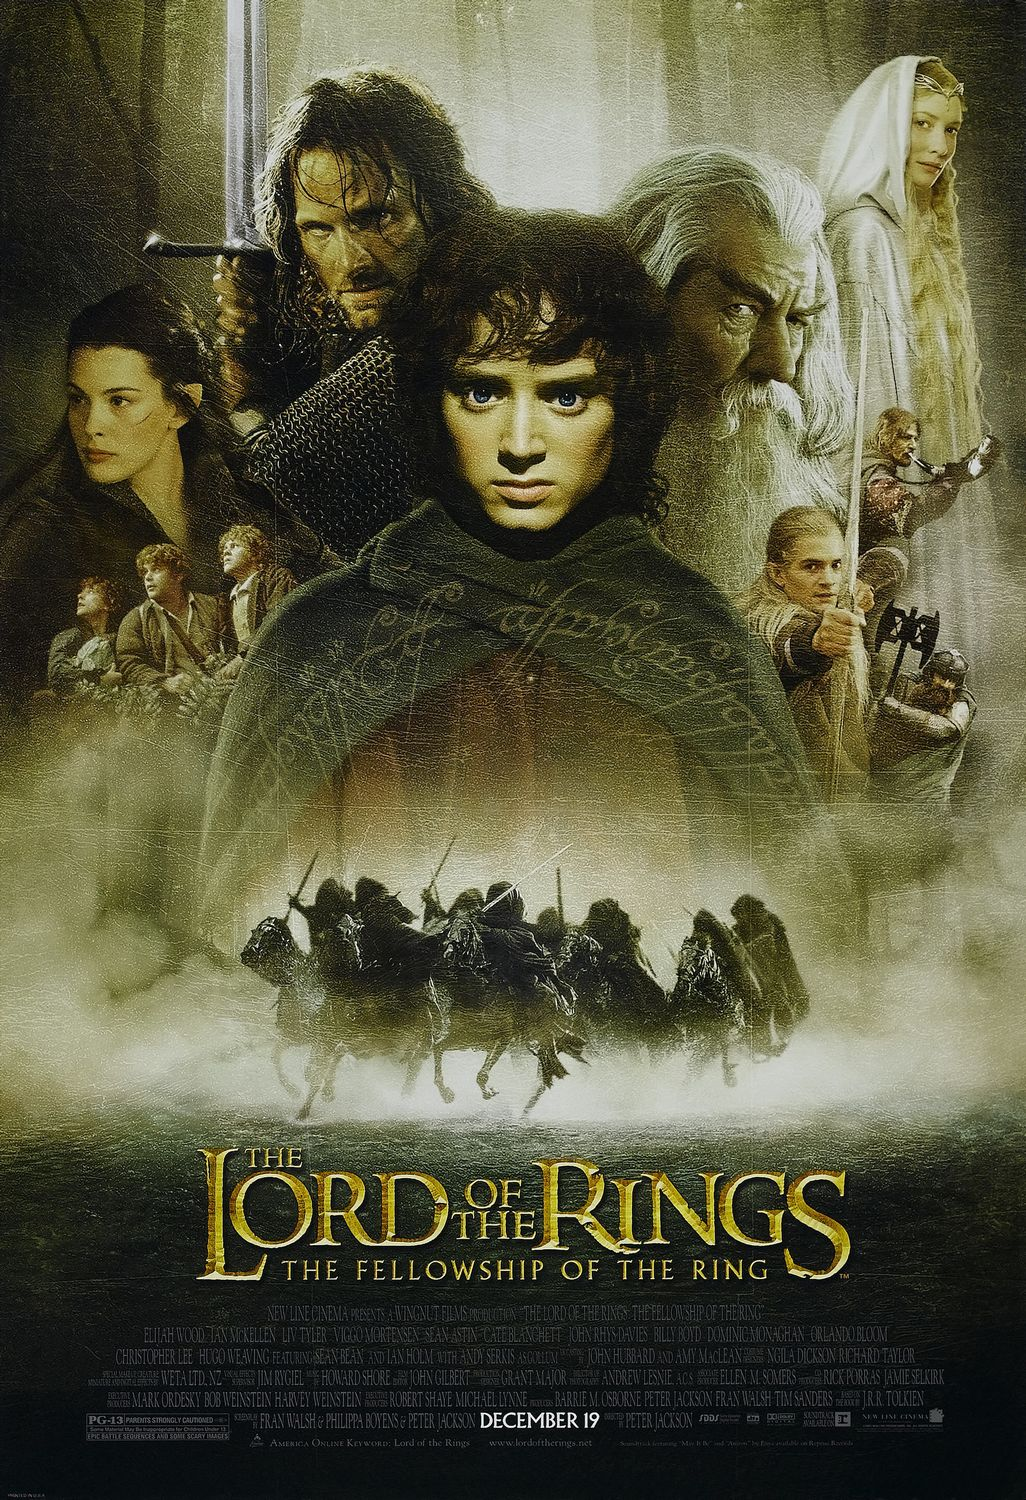 http://4.bp.blogspot.com/-tFYezQS-bRk/Tv4CAL6n1EI/AAAAAAAADiw/3mG3Tu6NW3g/s1600/2001-poster-lord_of_the_rings_the_fellowship_of_the_ring-3.jpg